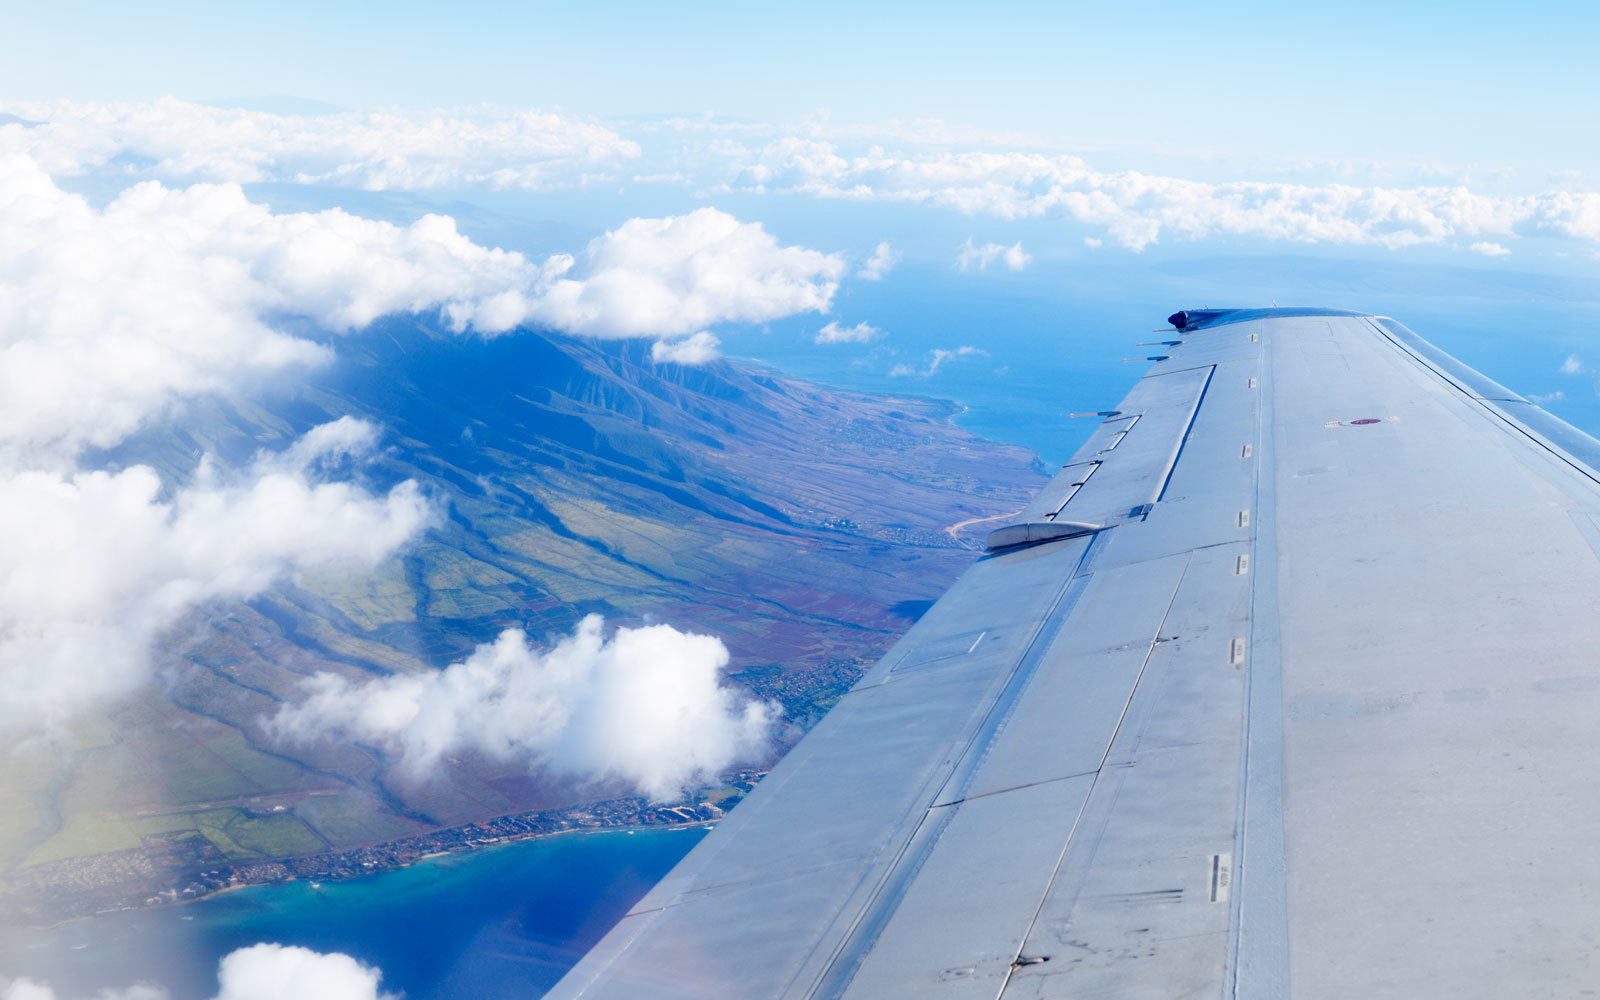 Hawaii airplane